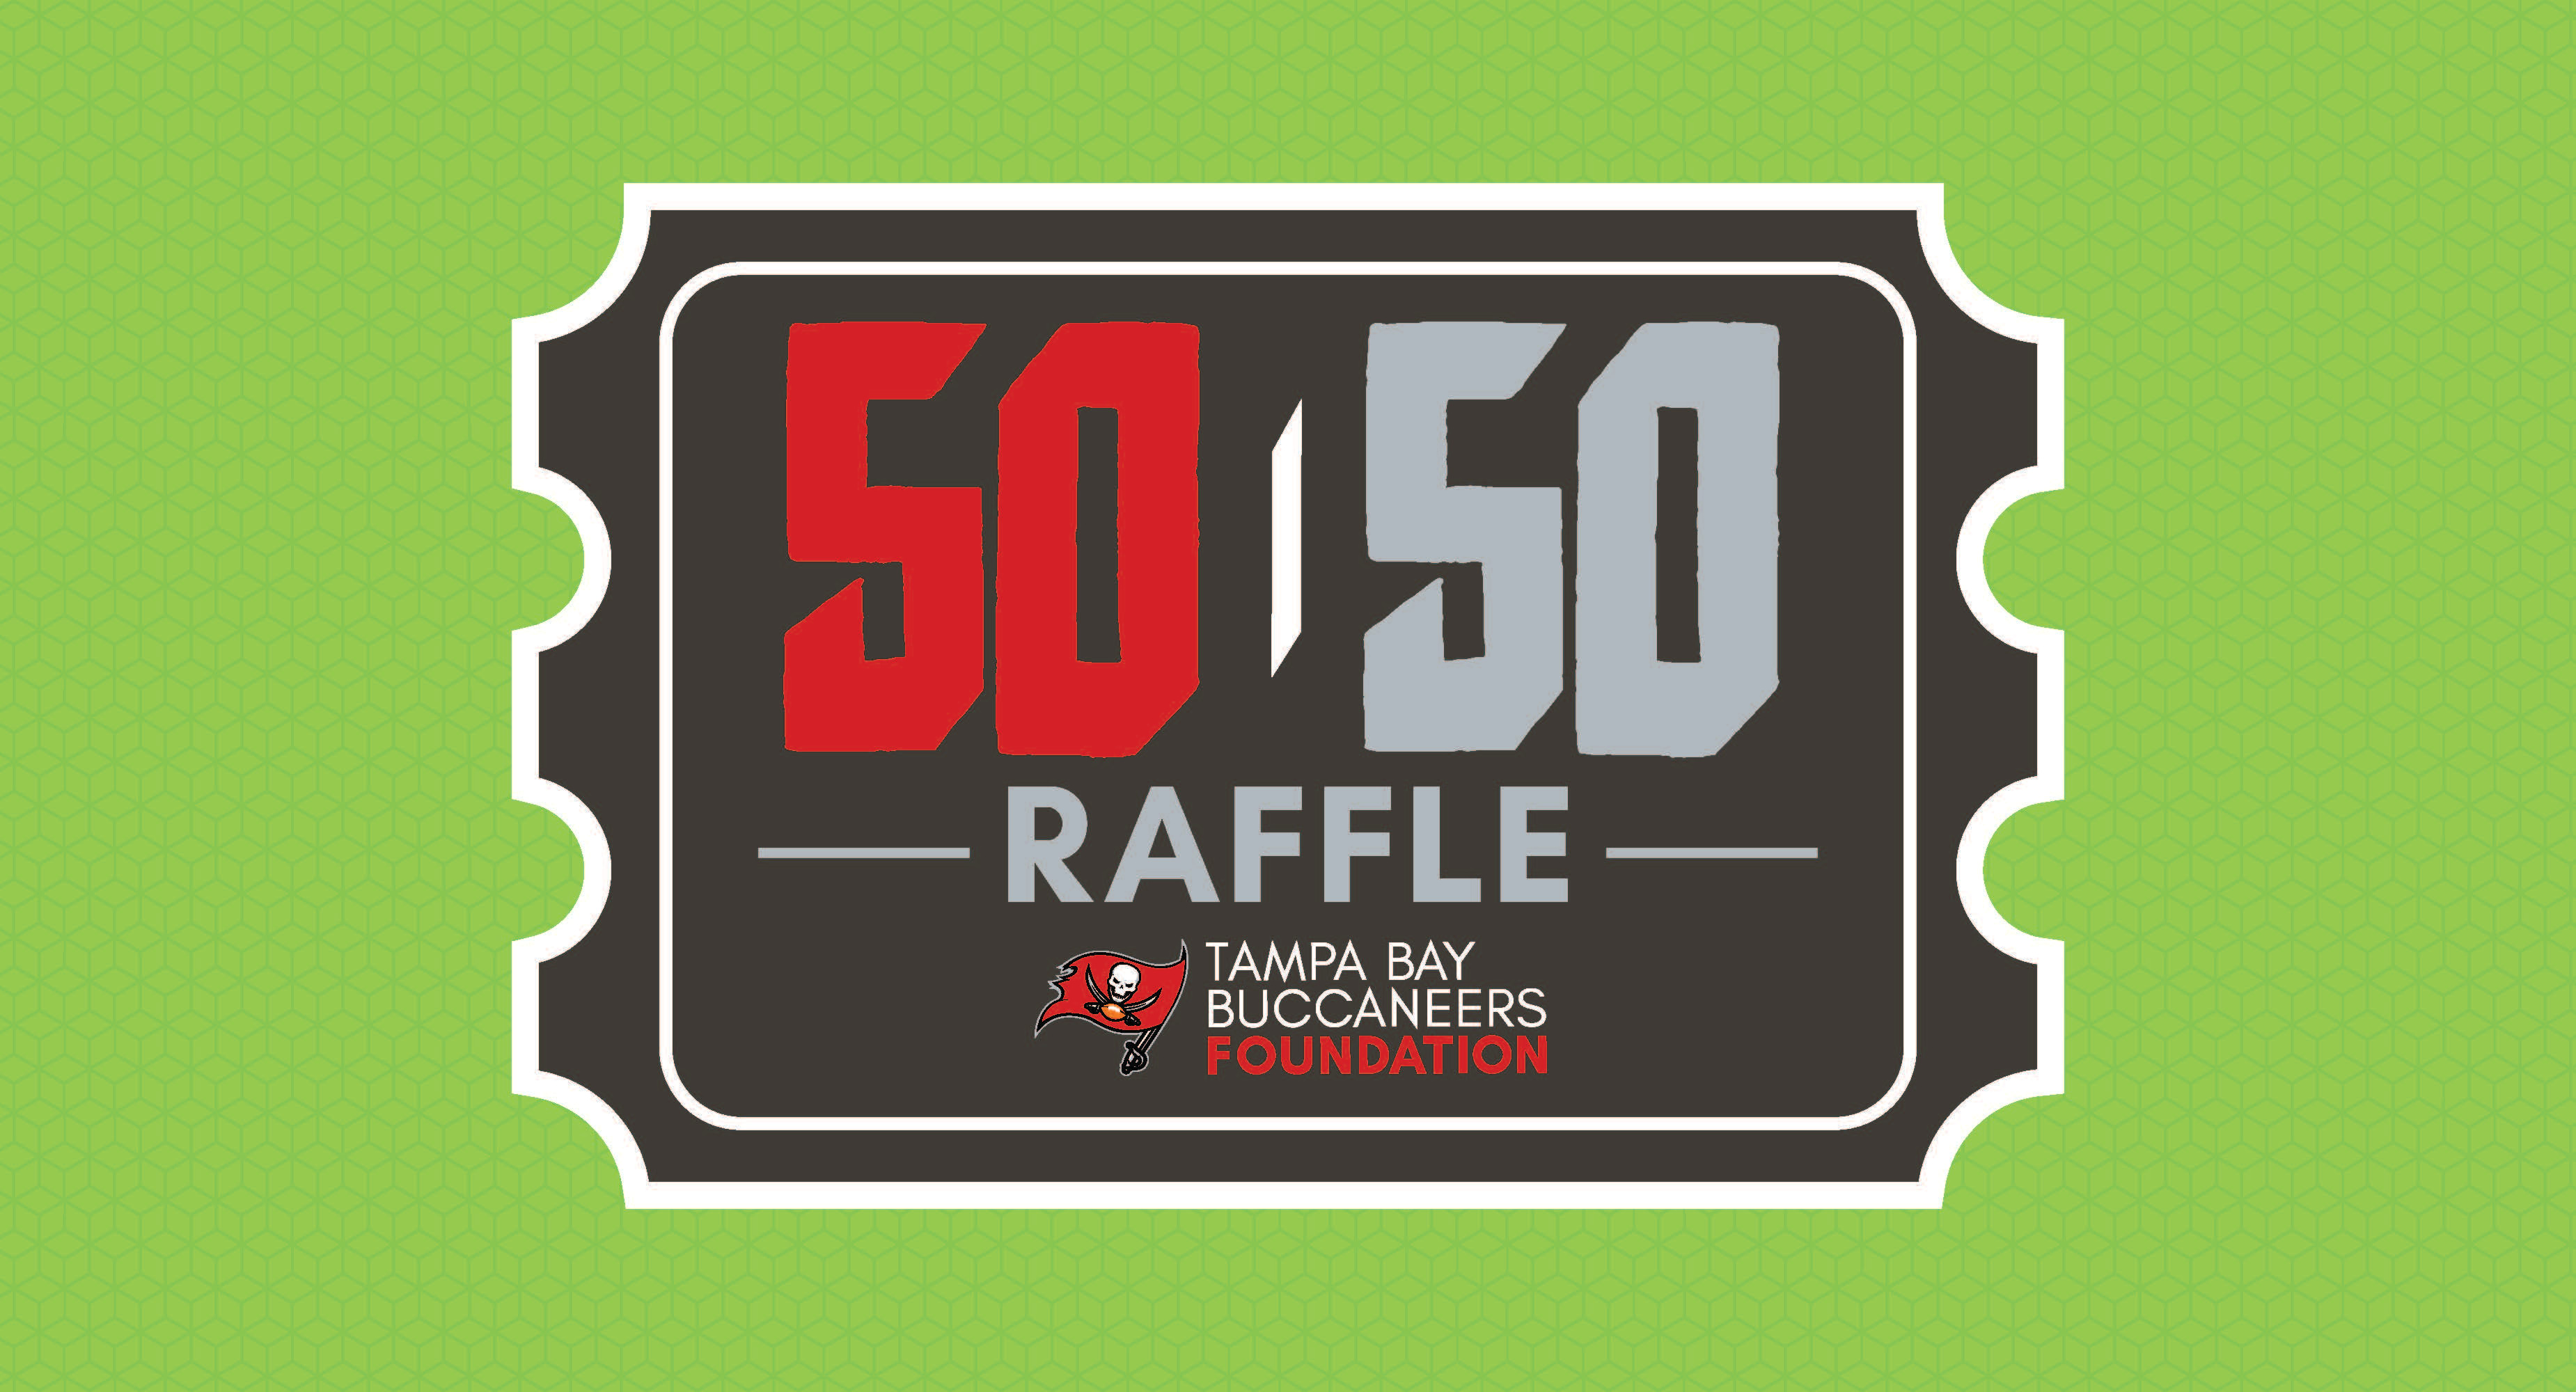 Tampa Bay Buccaneers Foundation 50/50 Raffle